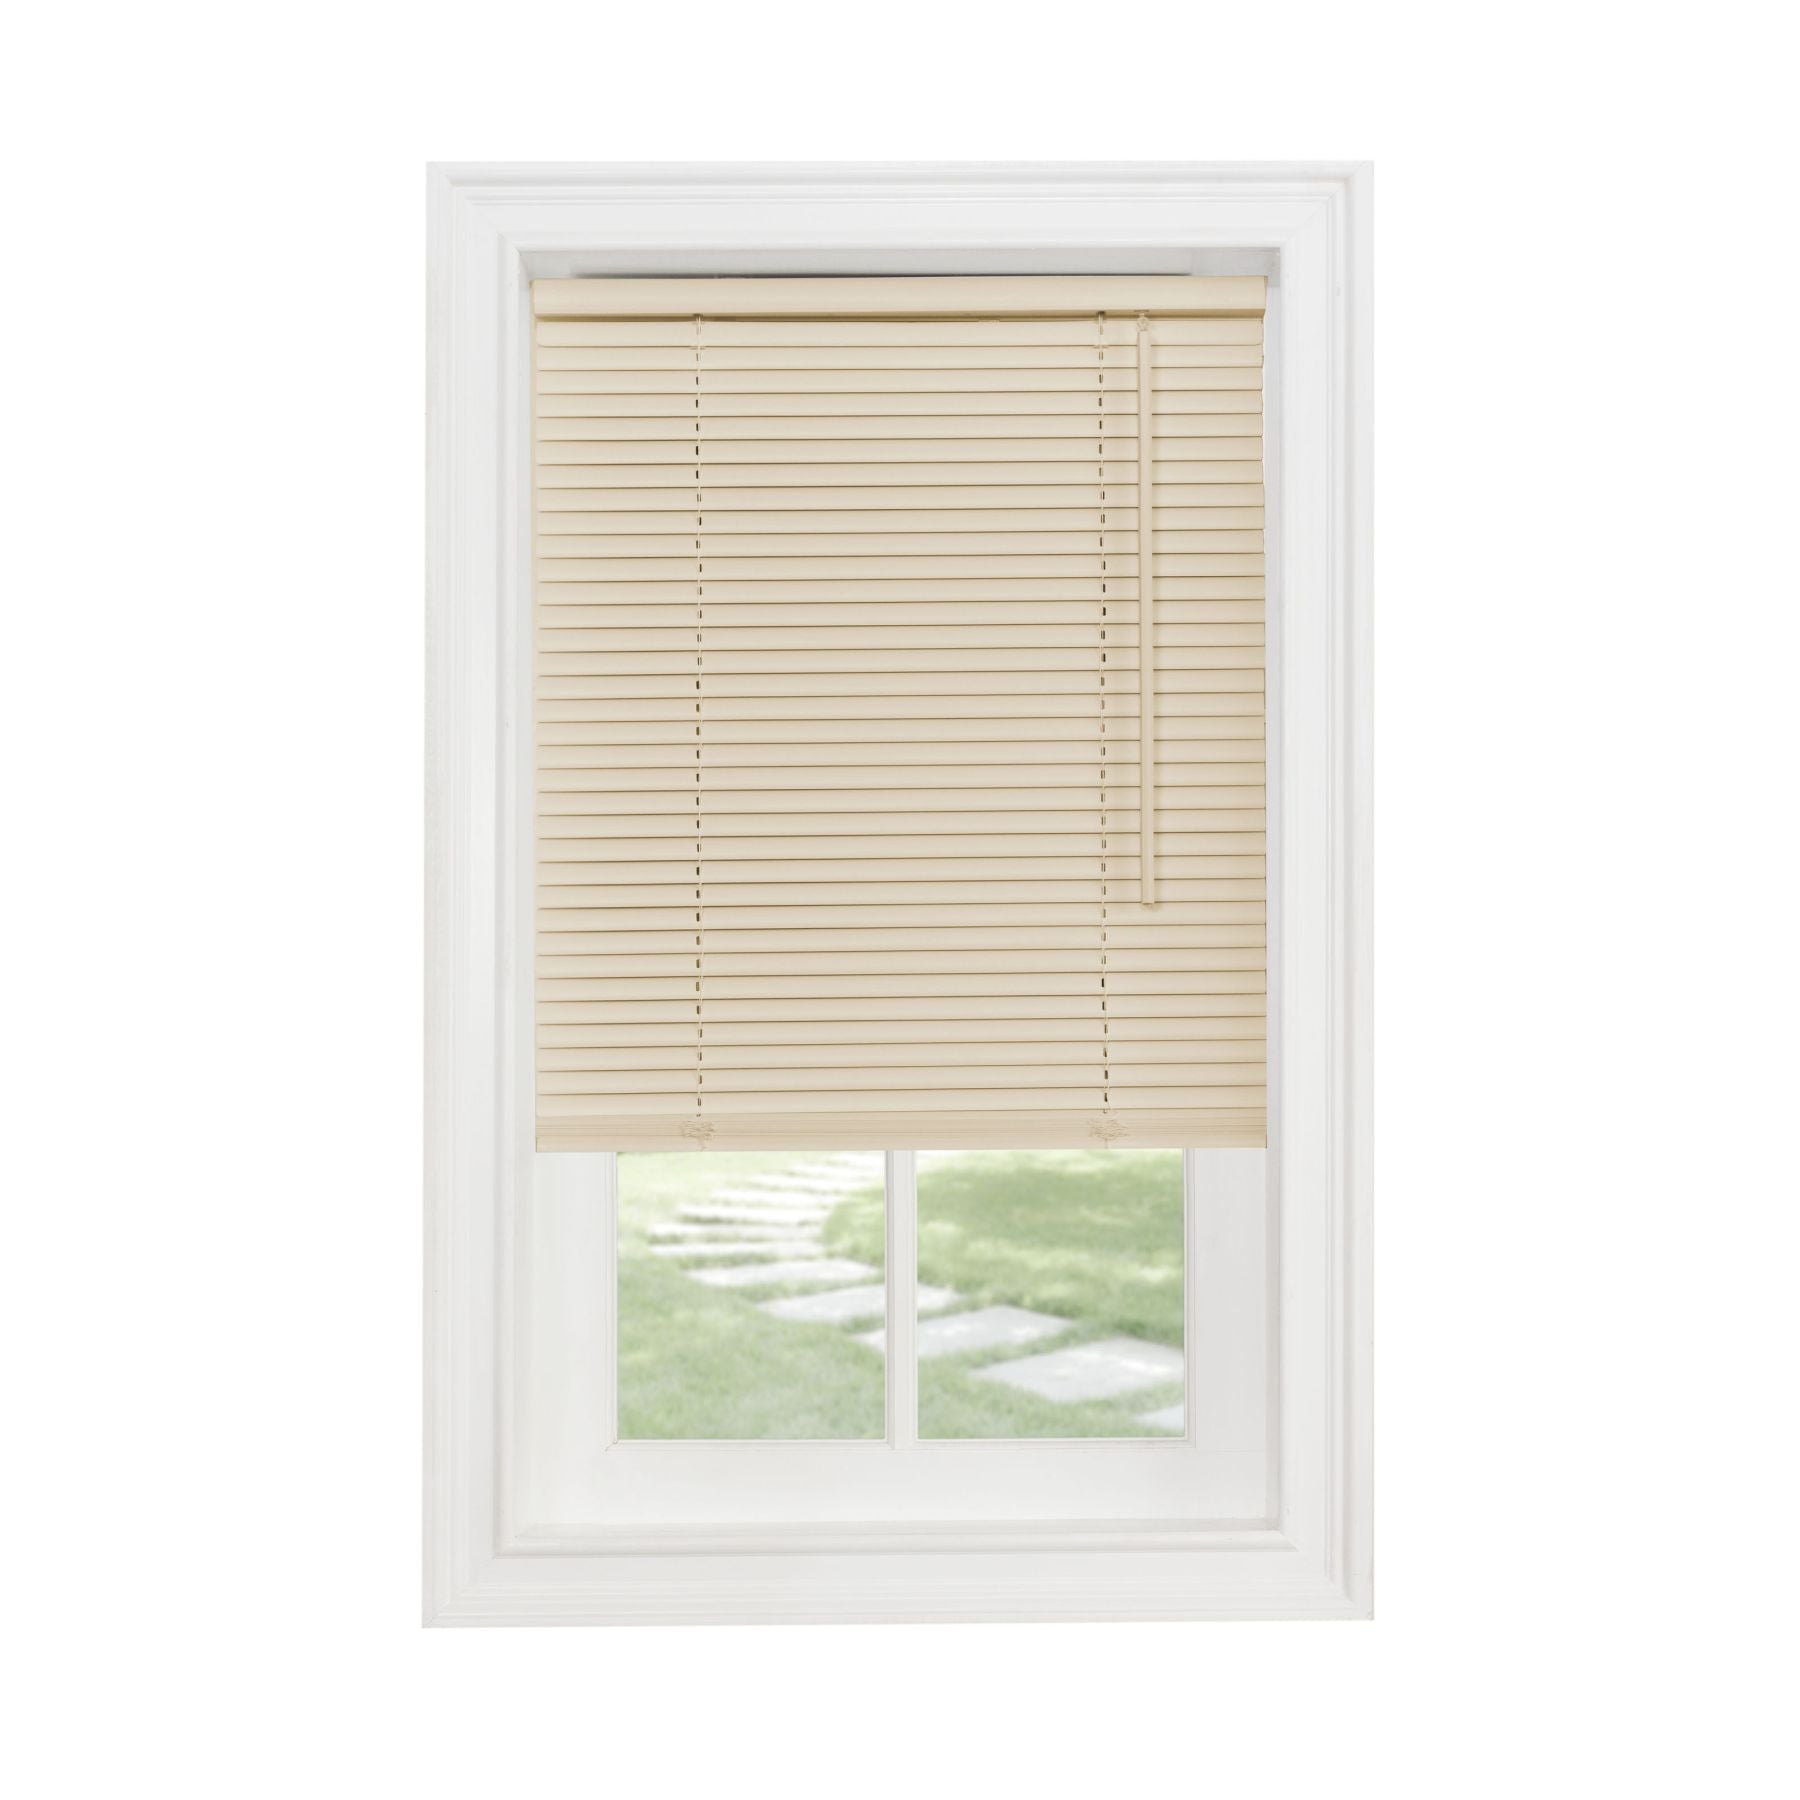 "Traditional Elegance Cordless Sunrise 1"" Light Filtering Mini Blind 36x64 - Alabaster"